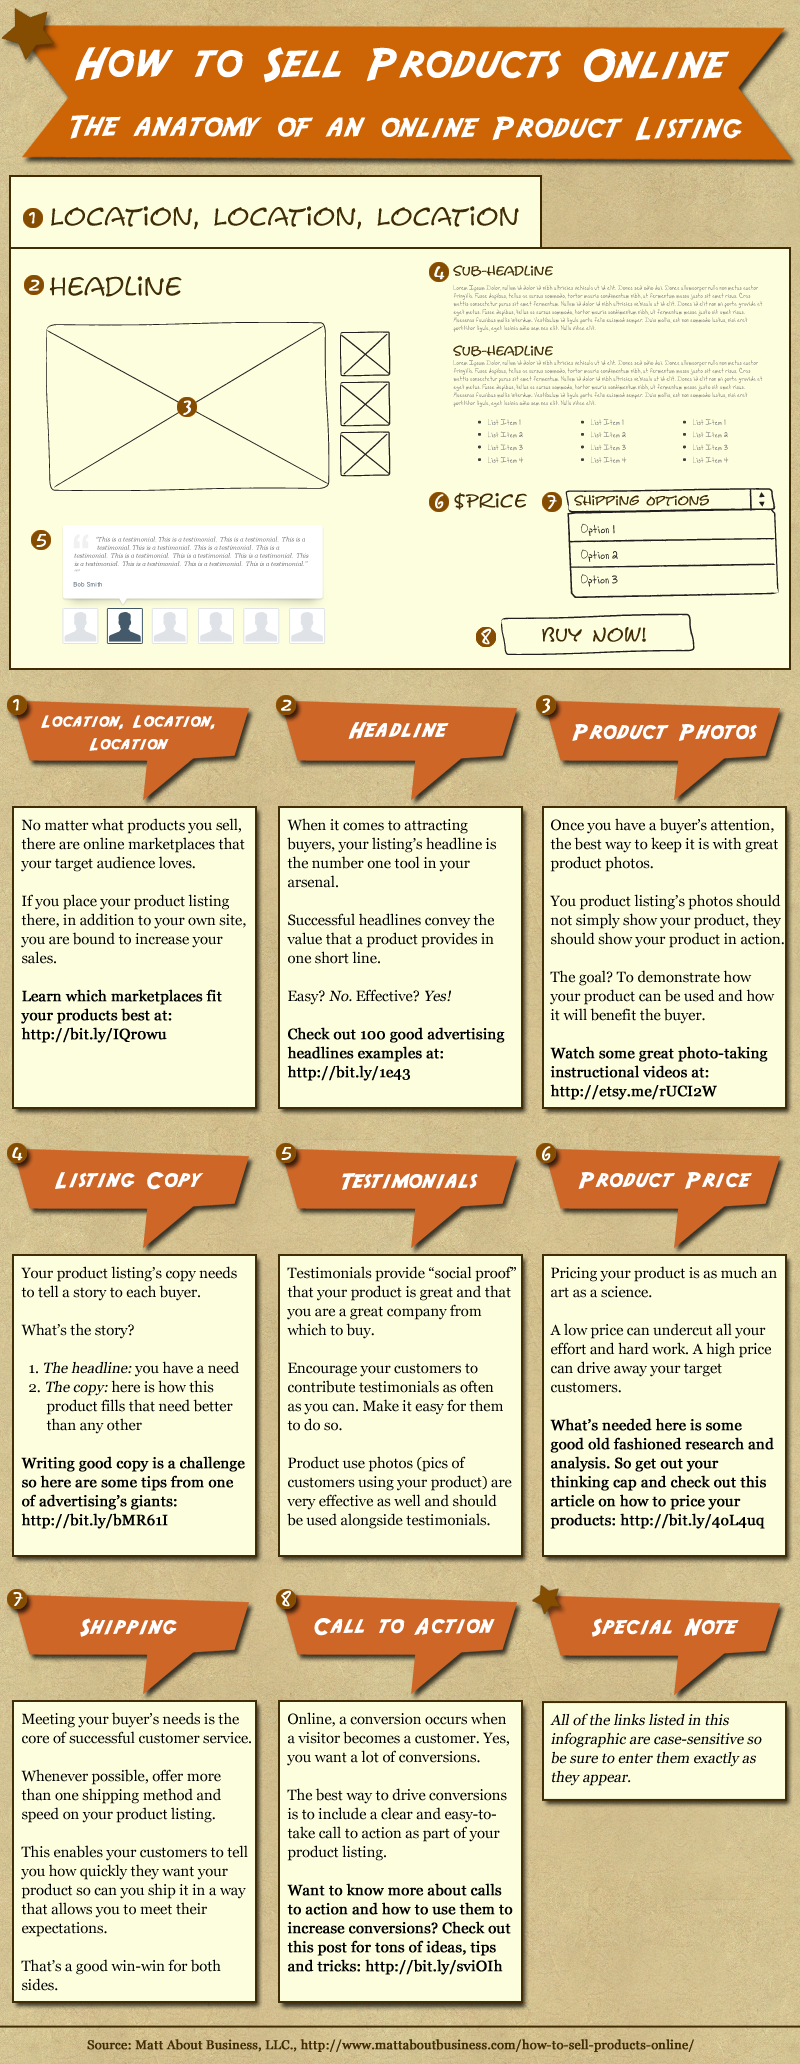 Infographic How To Sell Products Online The Anatomy Of An